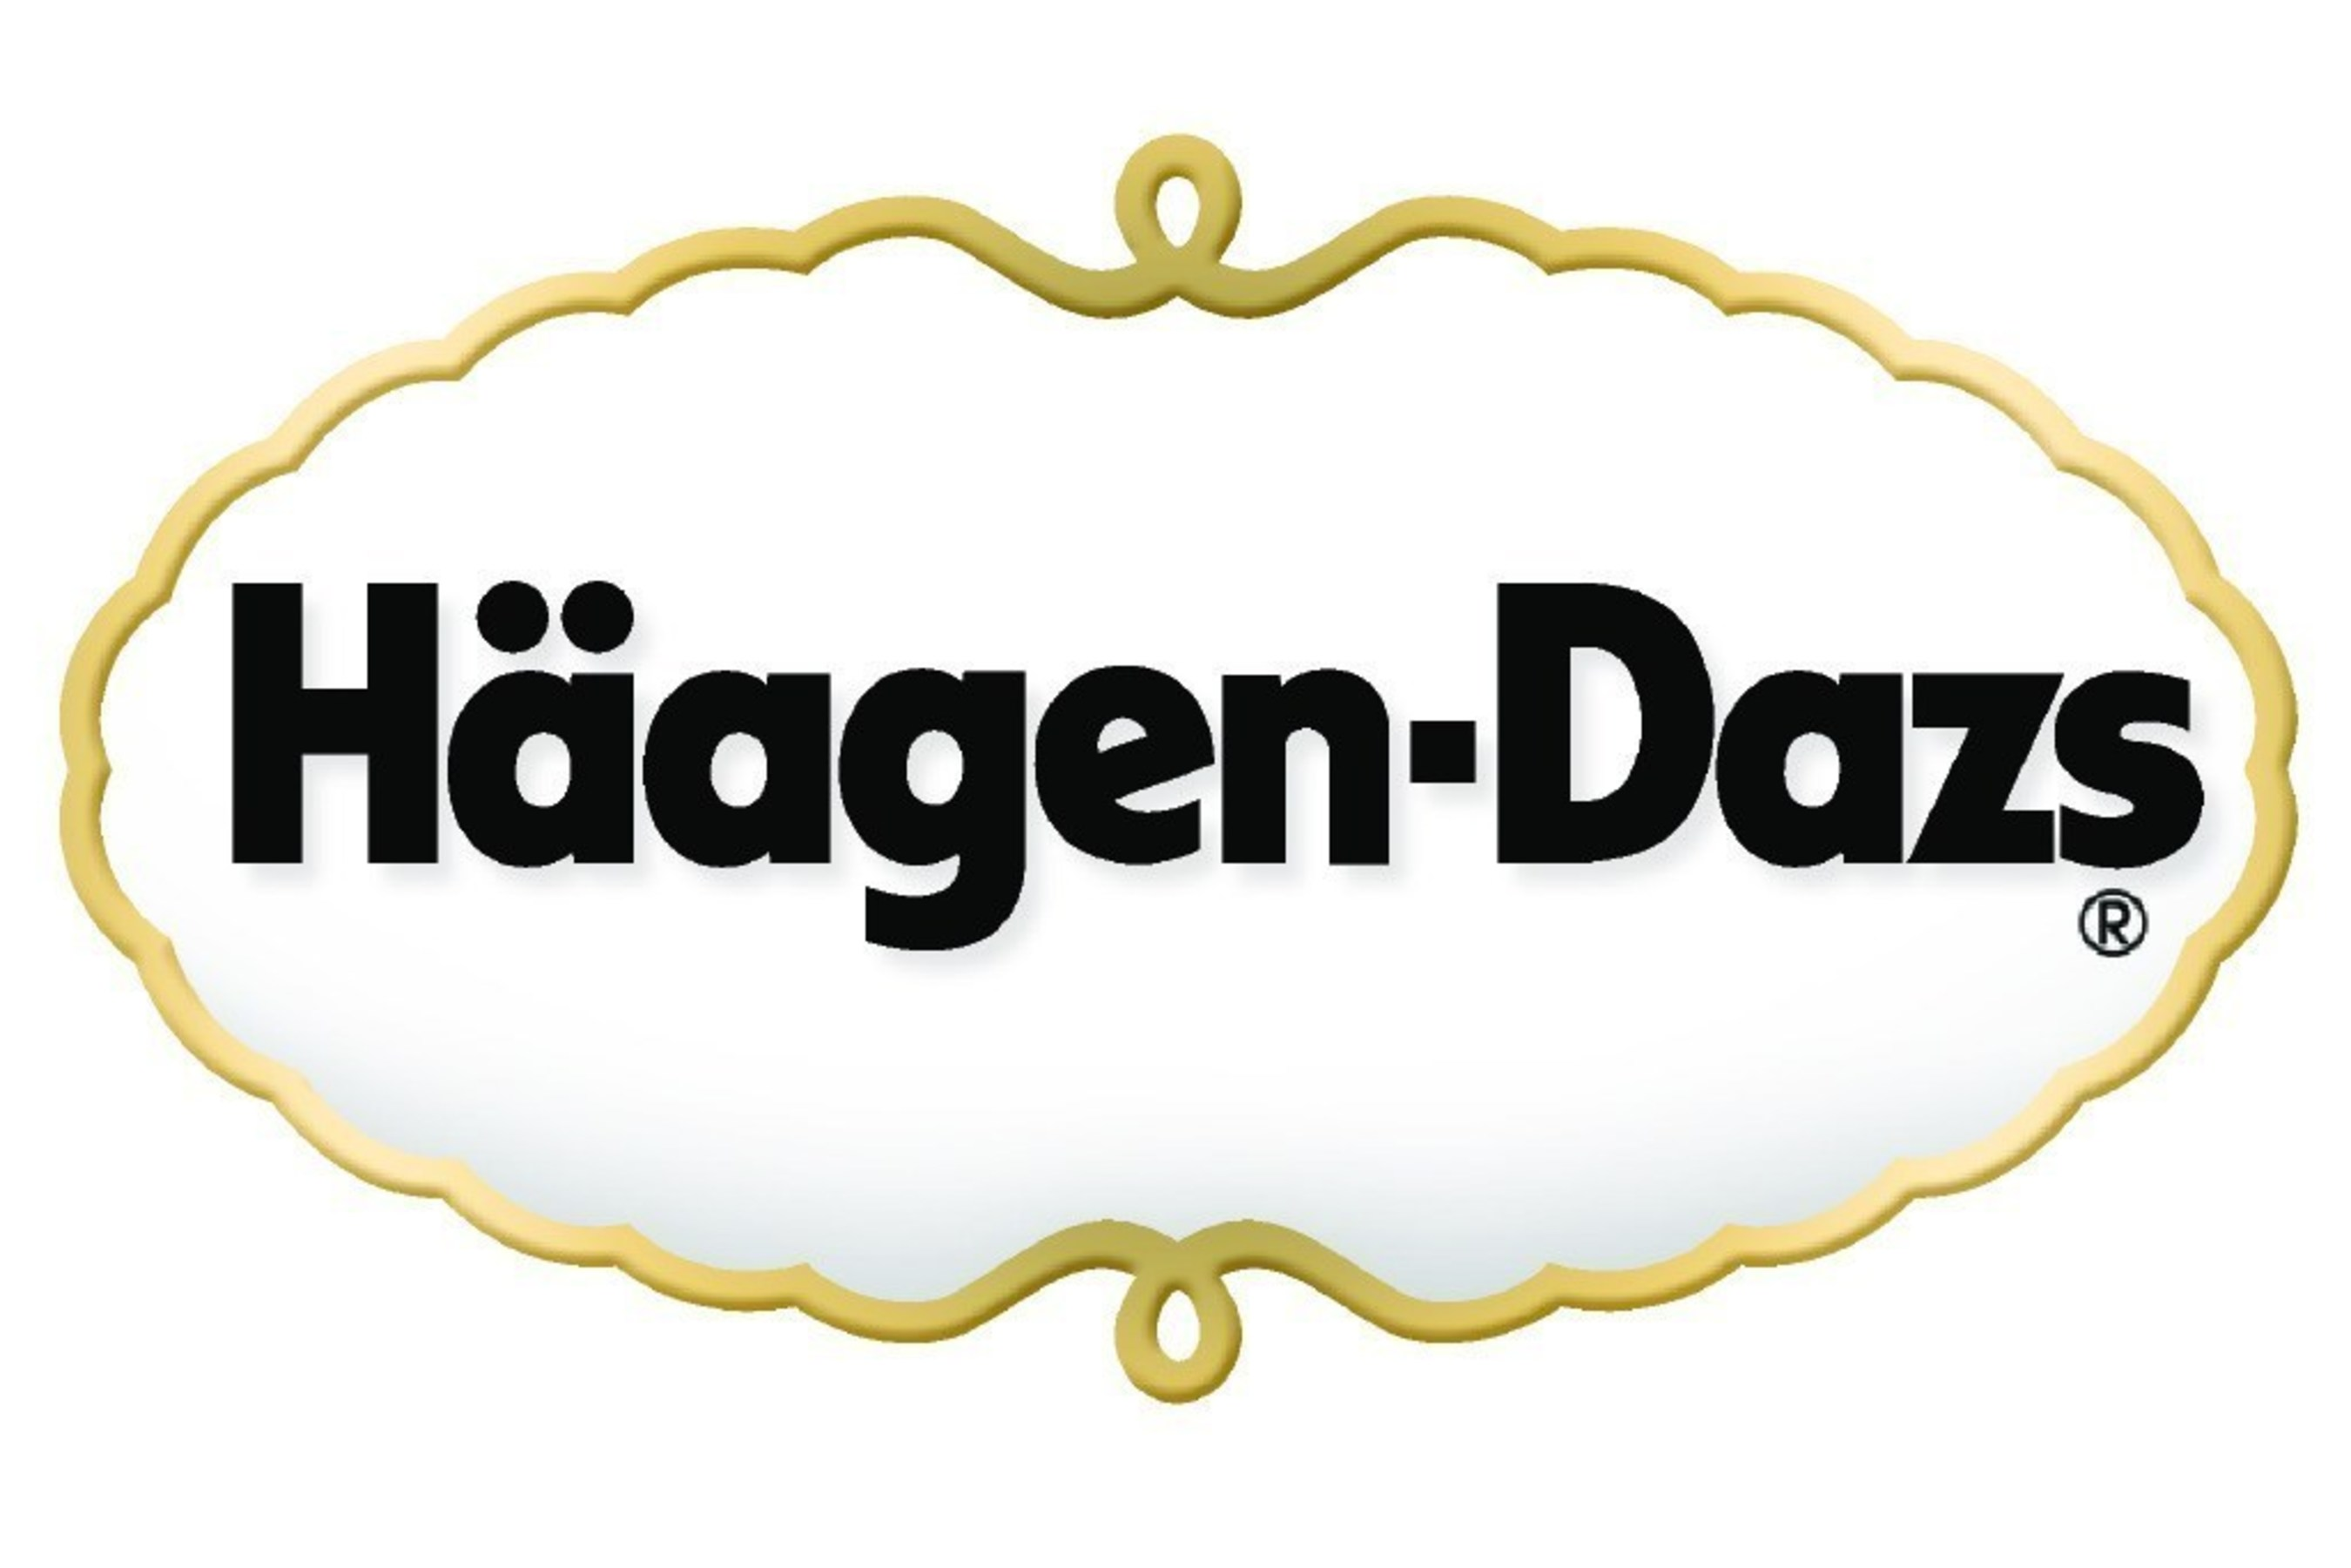 Enjoy Haagen-Dazs(R) Ice Cream On July 24 To Support A Good Cause; Participating Shops To Donate 100 Percent Of Sales On Friday, July 24, 2015, To Bert's Big Adventure